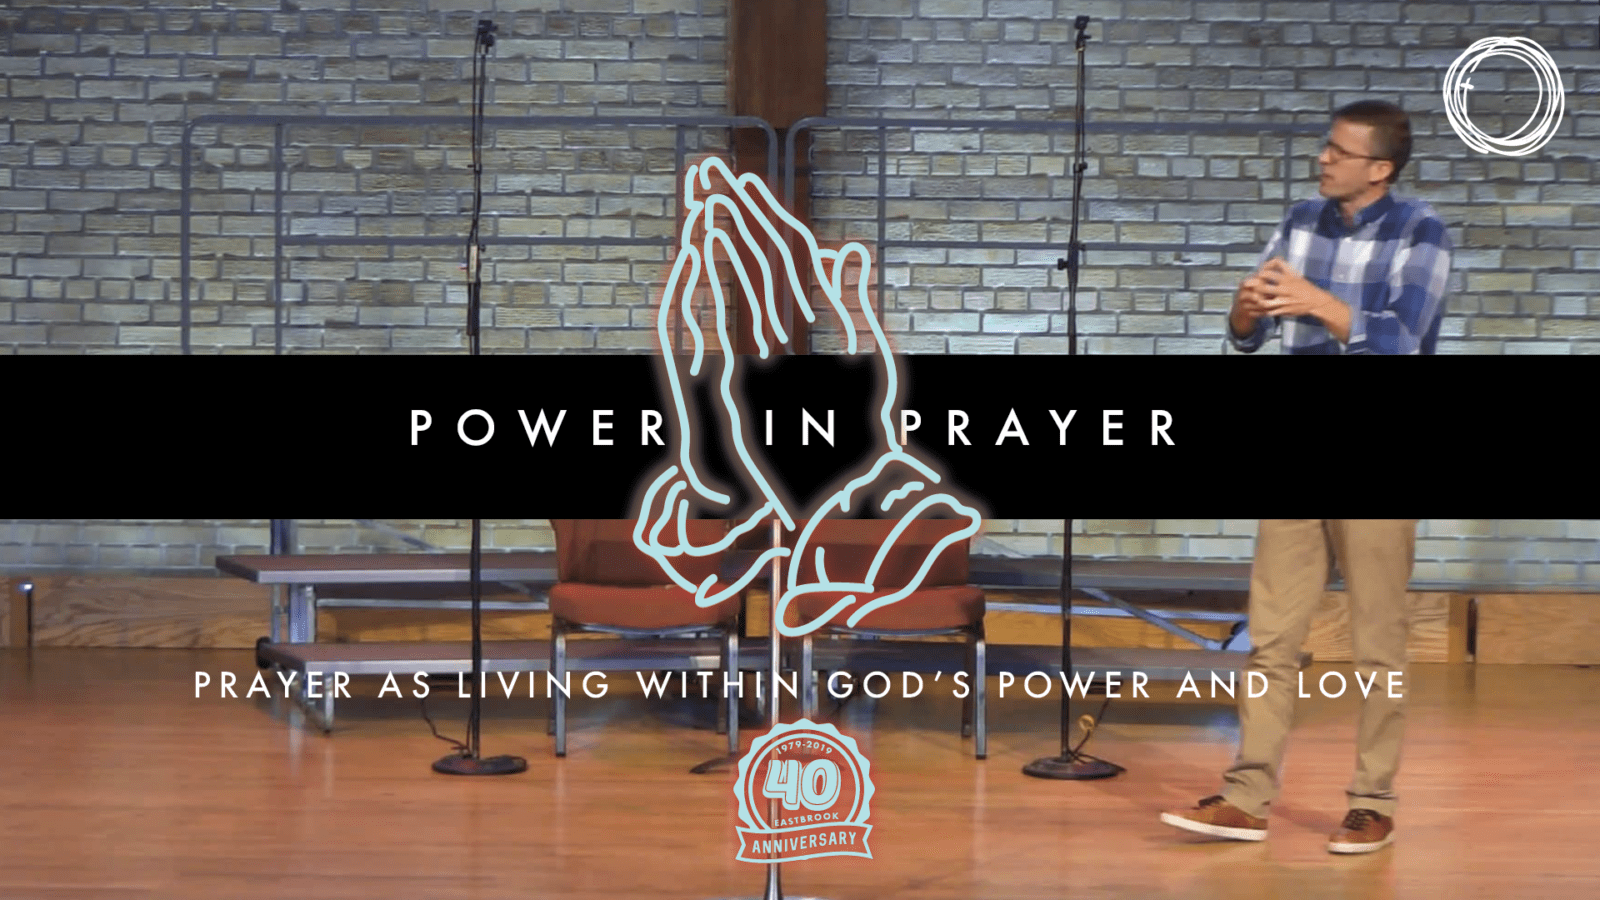 Prayer as Living Within God's Power and Love